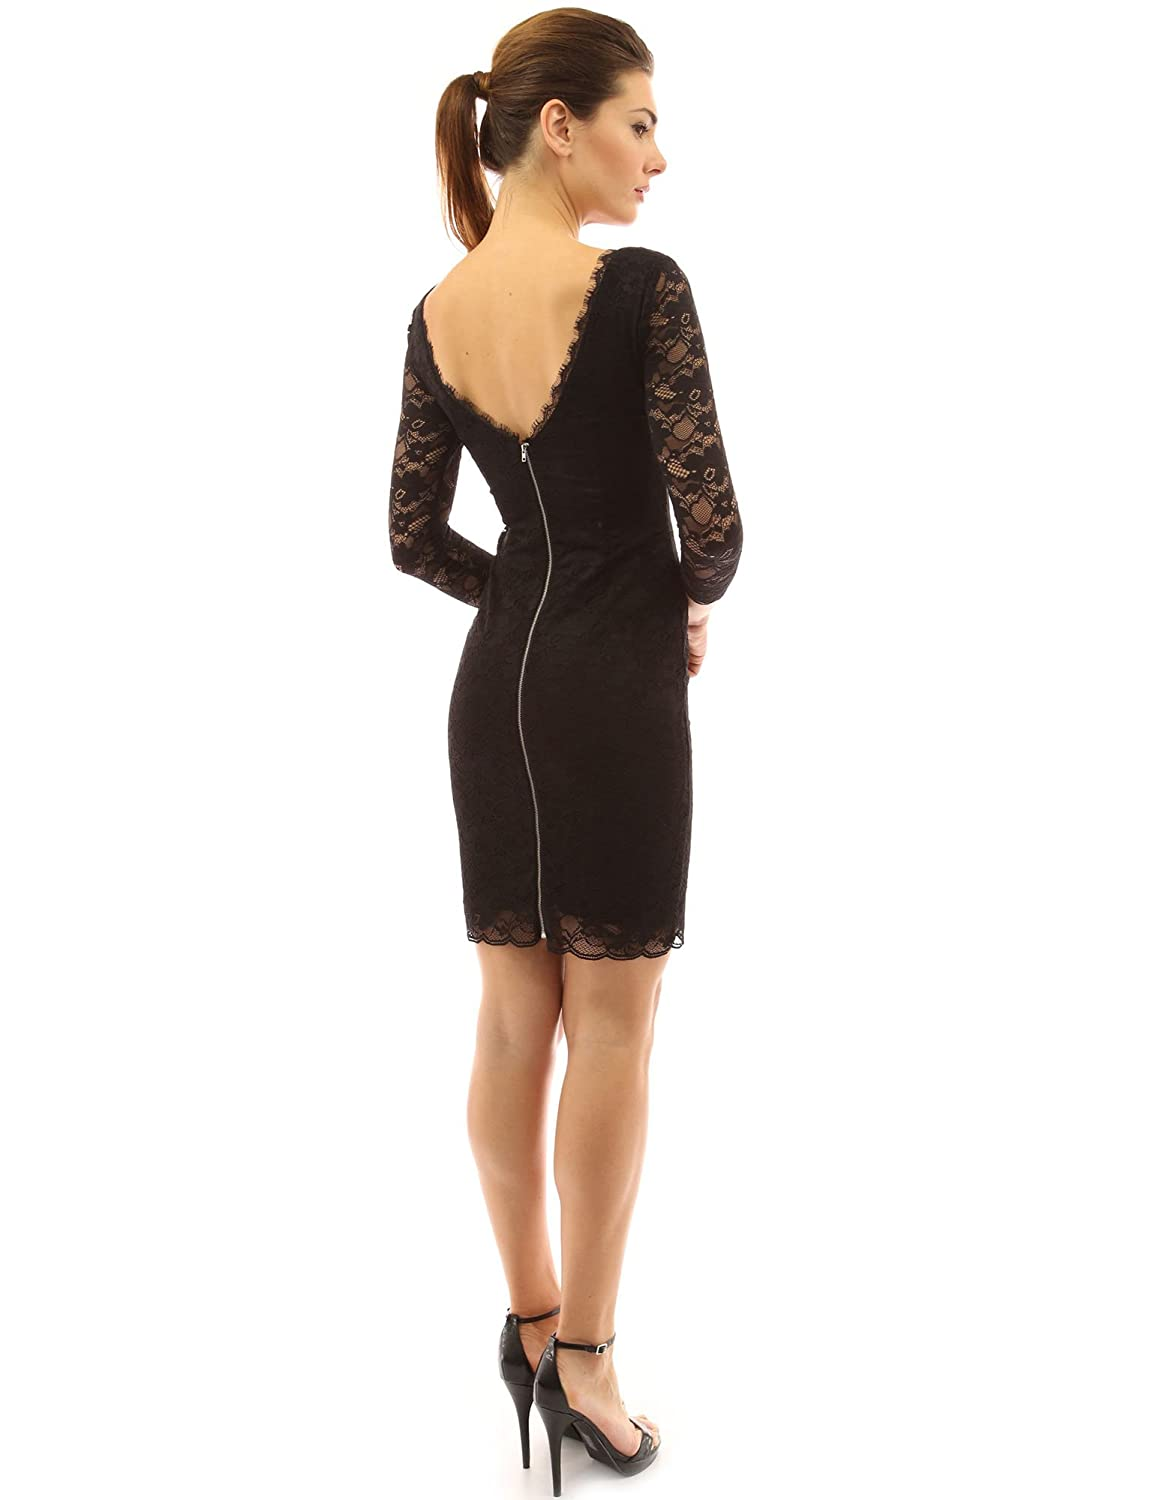 49d770c50bae4 PattyBoutik Women s Square Neck 3 4 Sleeve Zip Back Lace Sheath Dress